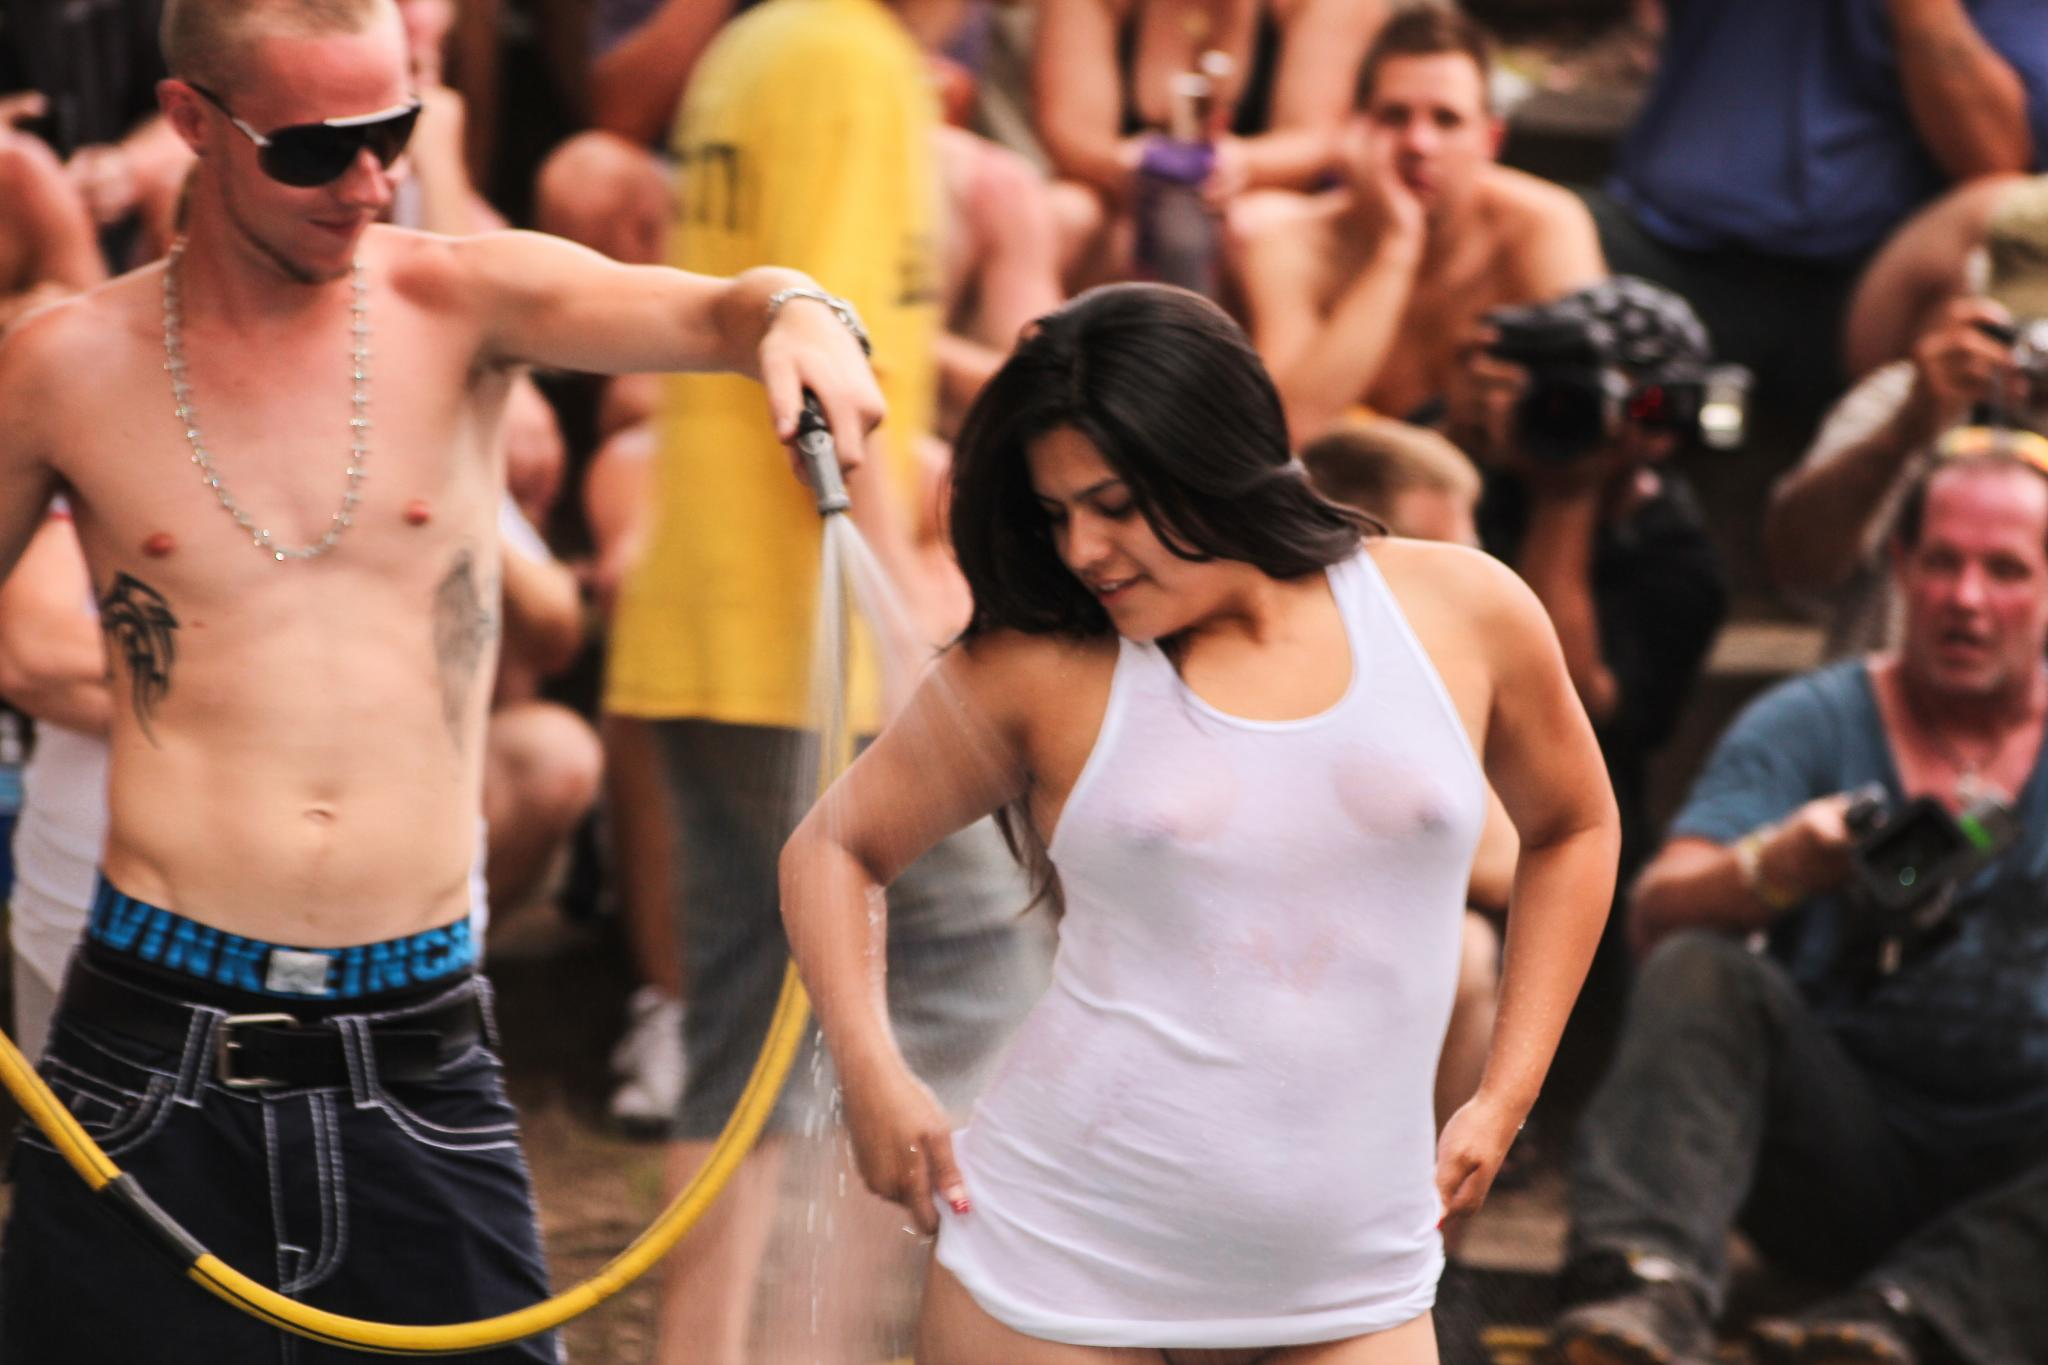 File:Sun Club Wet T-Shirt Contest 2012.jpg - Wikimedia Commons Wet